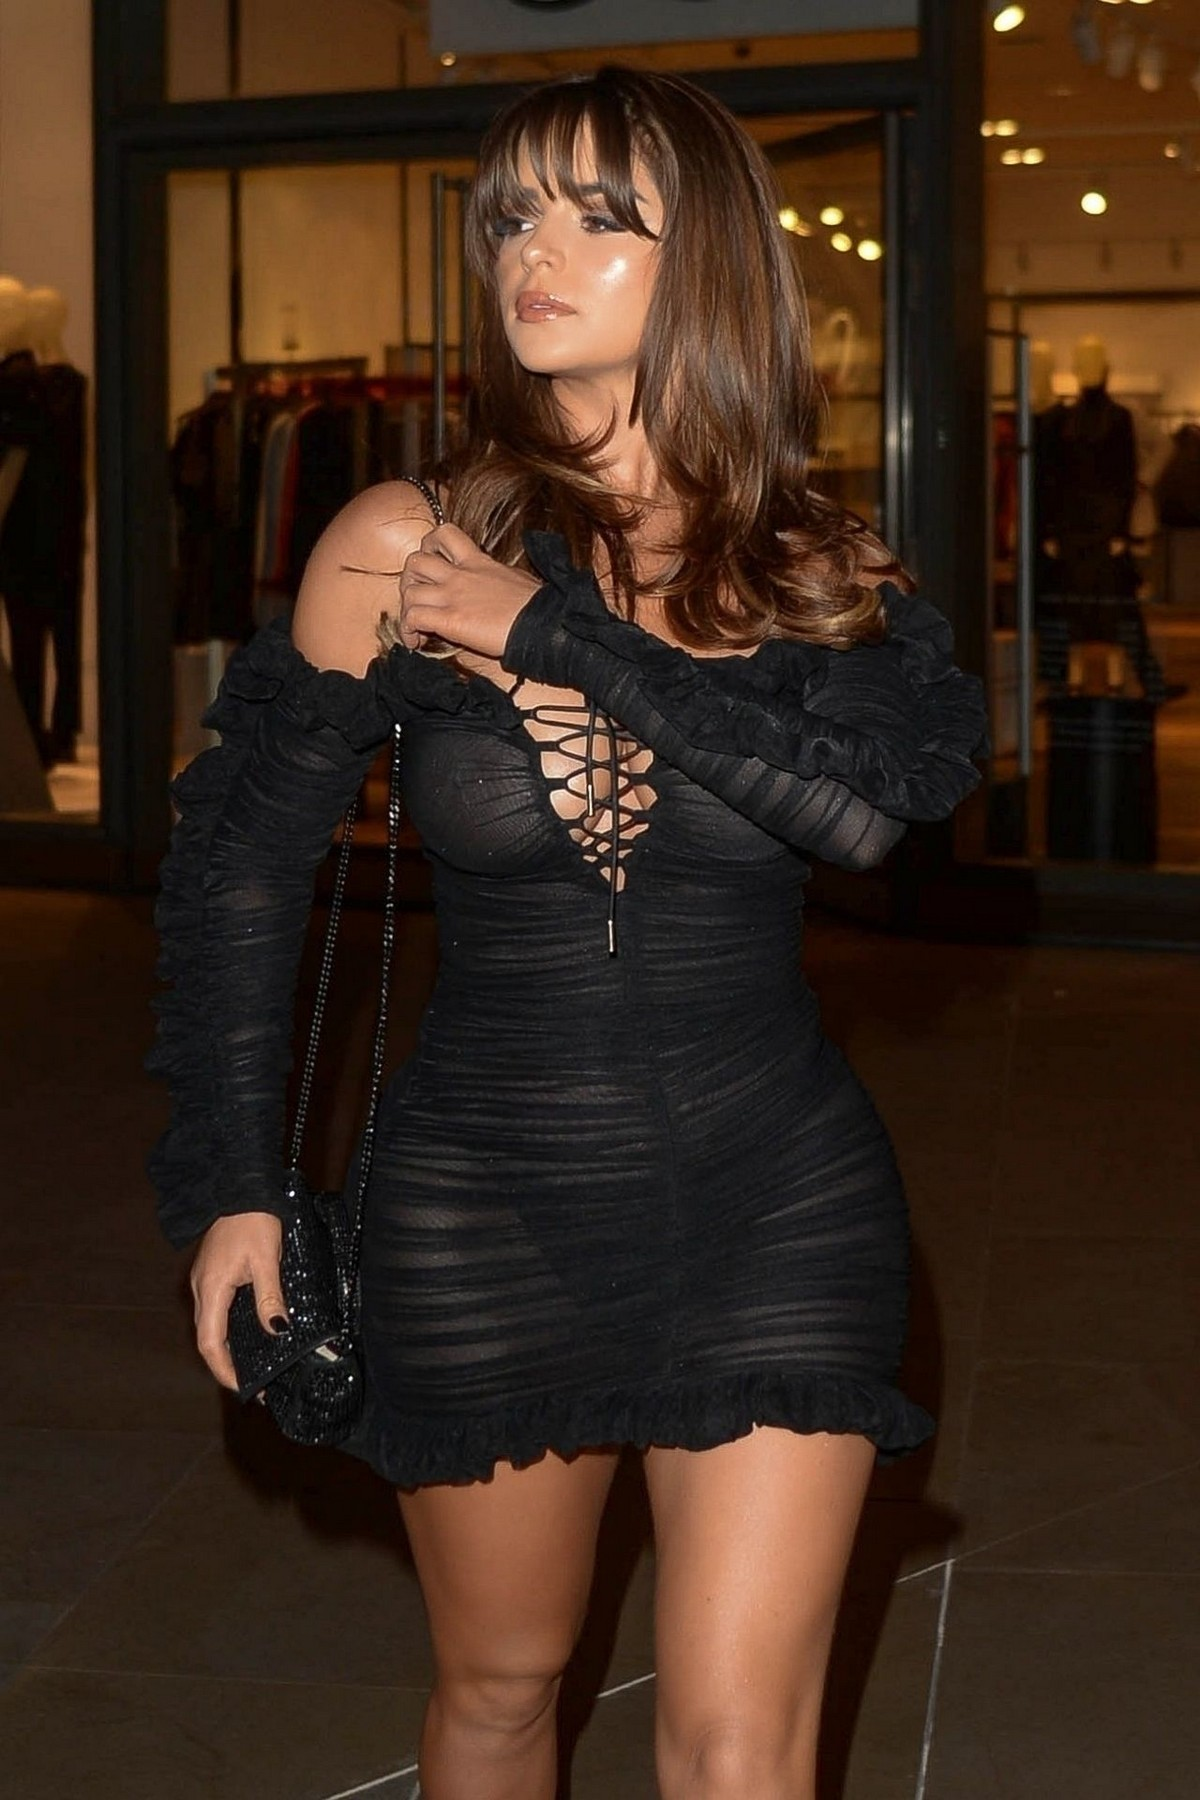 Demi Rose Mawby seen in Stylish Short Dress at The Skinny Tan Choc Range launch party in Madison, London 2019/11/19 3